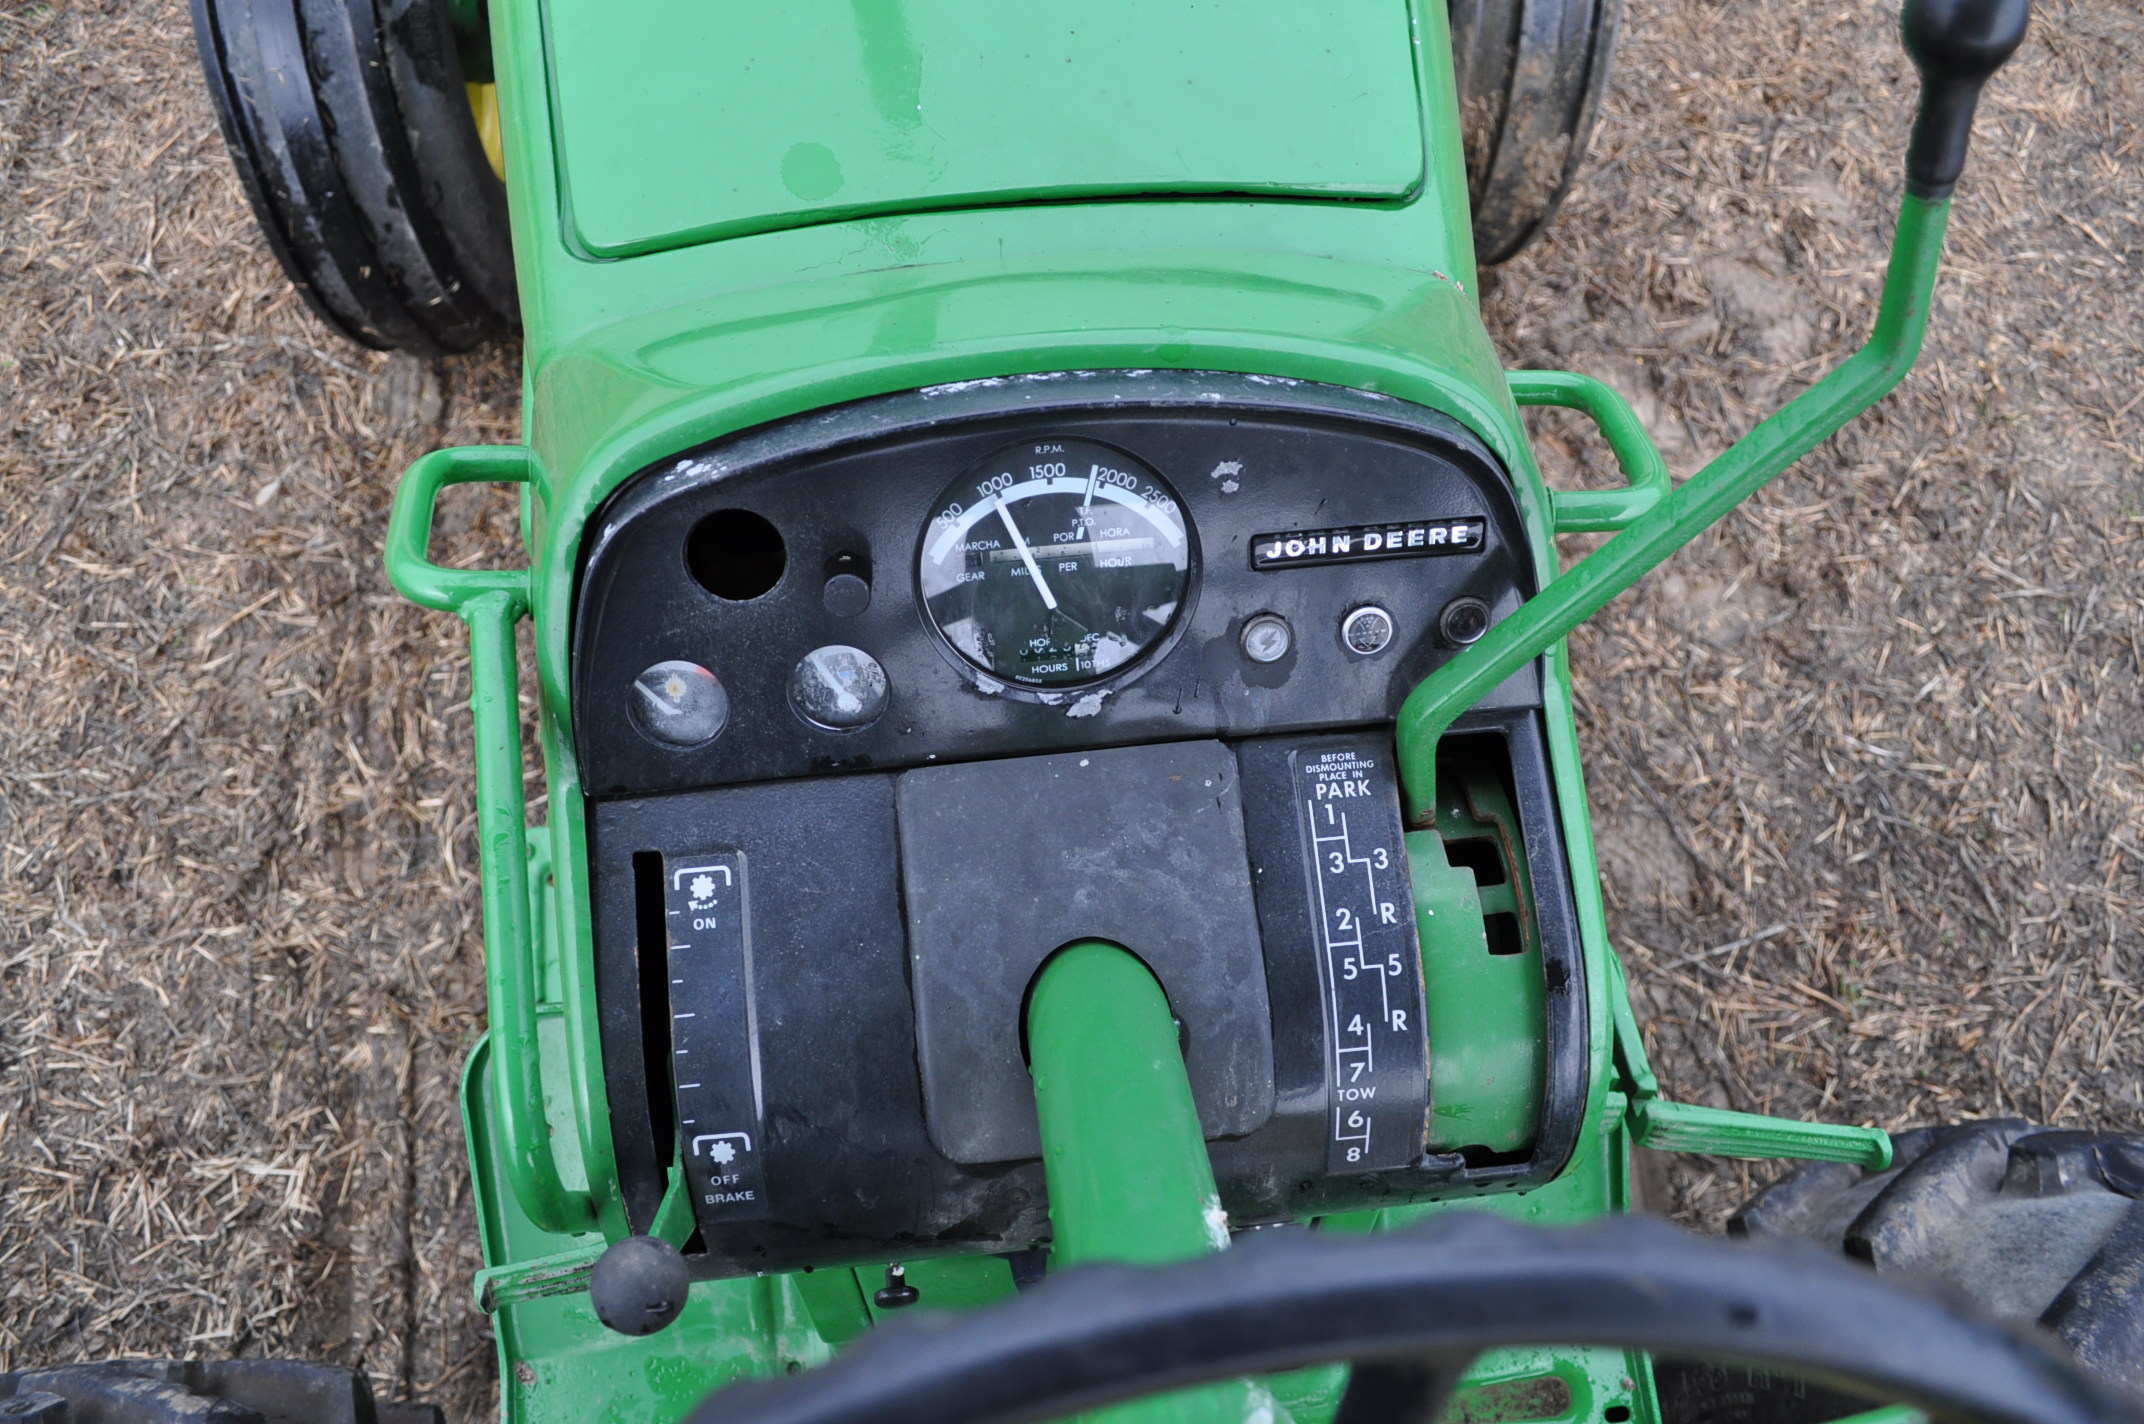 John Deere 4520 tractor, ***4520 frame with 4620 engine**** diesel, 18.4-38 new inside rear - Image 16 of 17